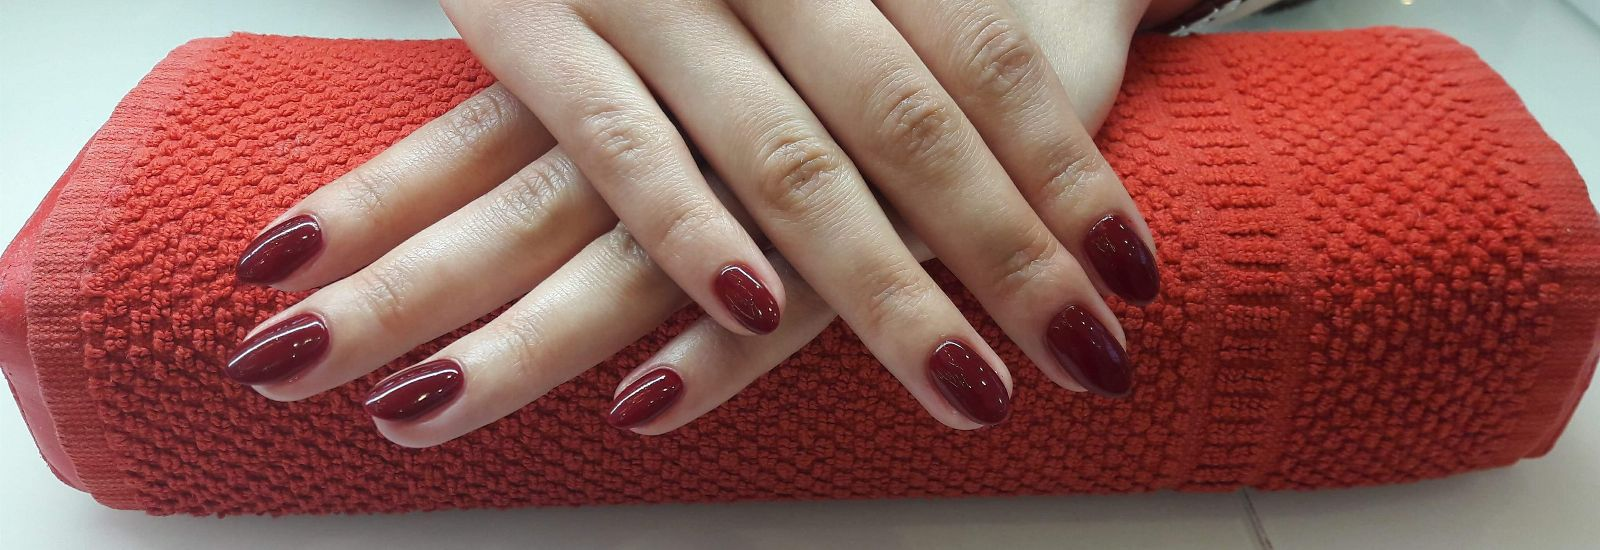 Manicure Express Toruń PLAZA, Toruń, received-1560434320740055